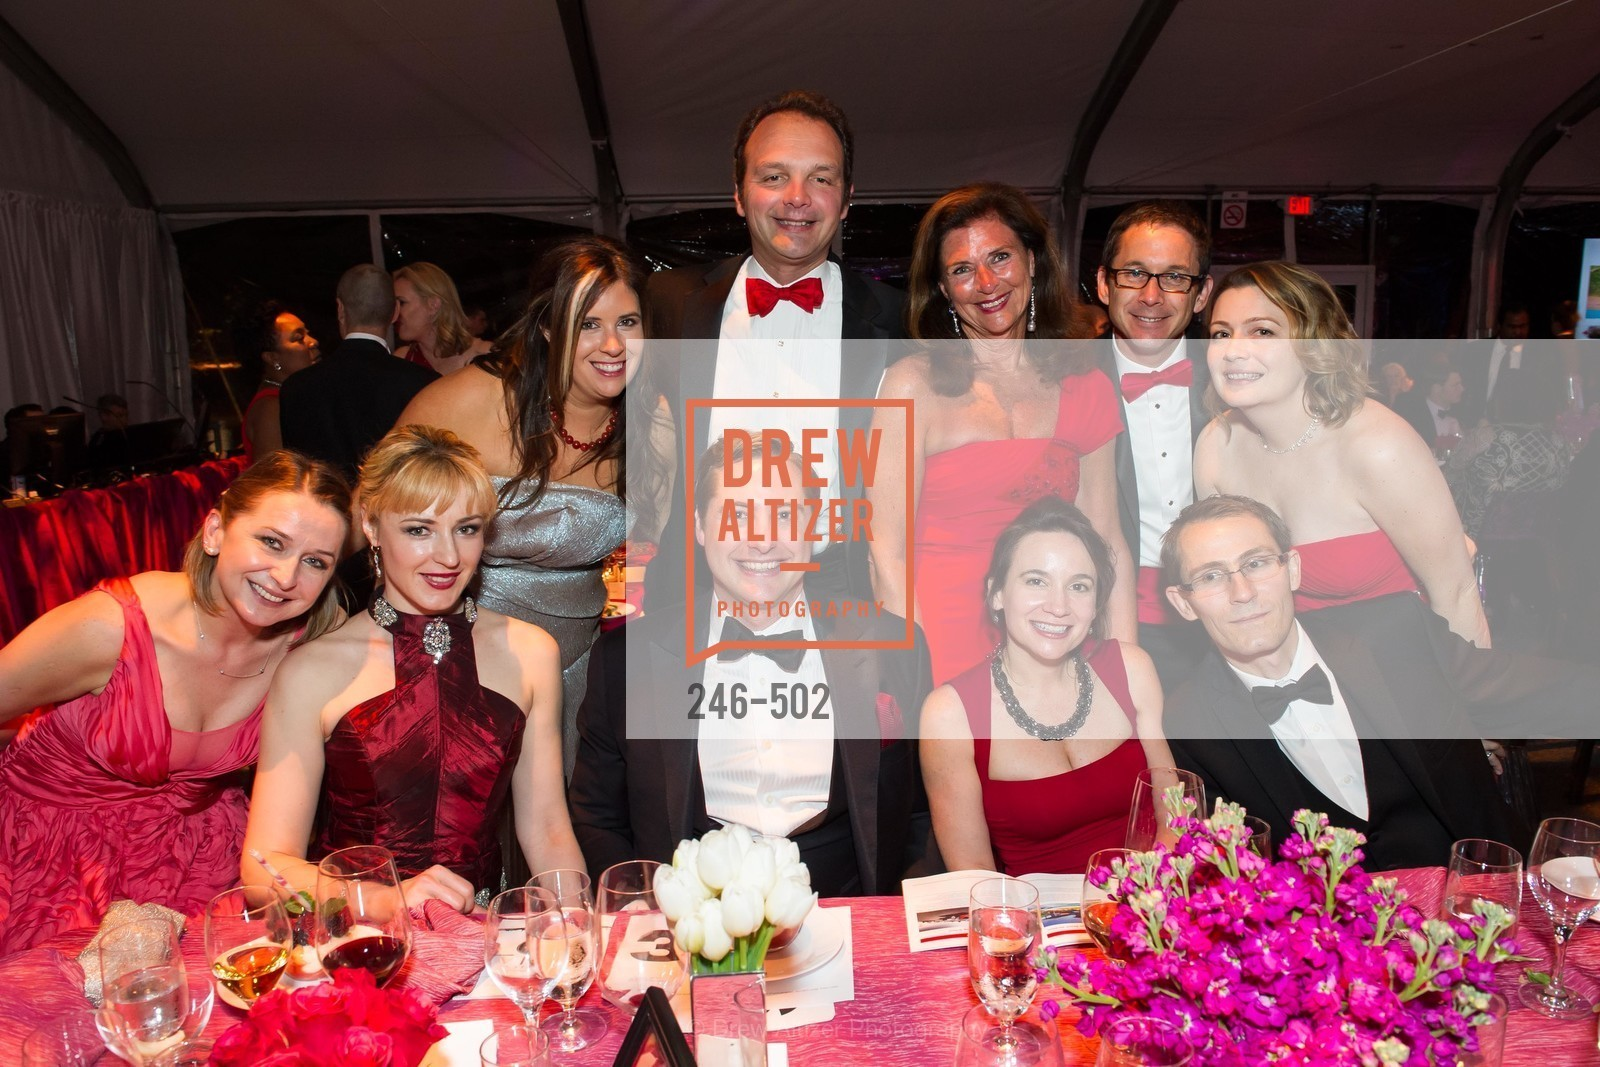 Anjelika Koulebakina, Liza Gustafson, Ashley de Smeth, Brian Gustafson, Guillaume Orliac, Linda Zider, 2014 RED CROSS Gala Honoring Paula Downey as the American Red Cross Bay Area Chapter Humanitarian CEO of the Year, US. Treasure Island (The Great Lawn), April 5th, 2014,Drew Altizer, Drew Altizer Photography, full-service agency, private events, San Francisco photographer, photographer california